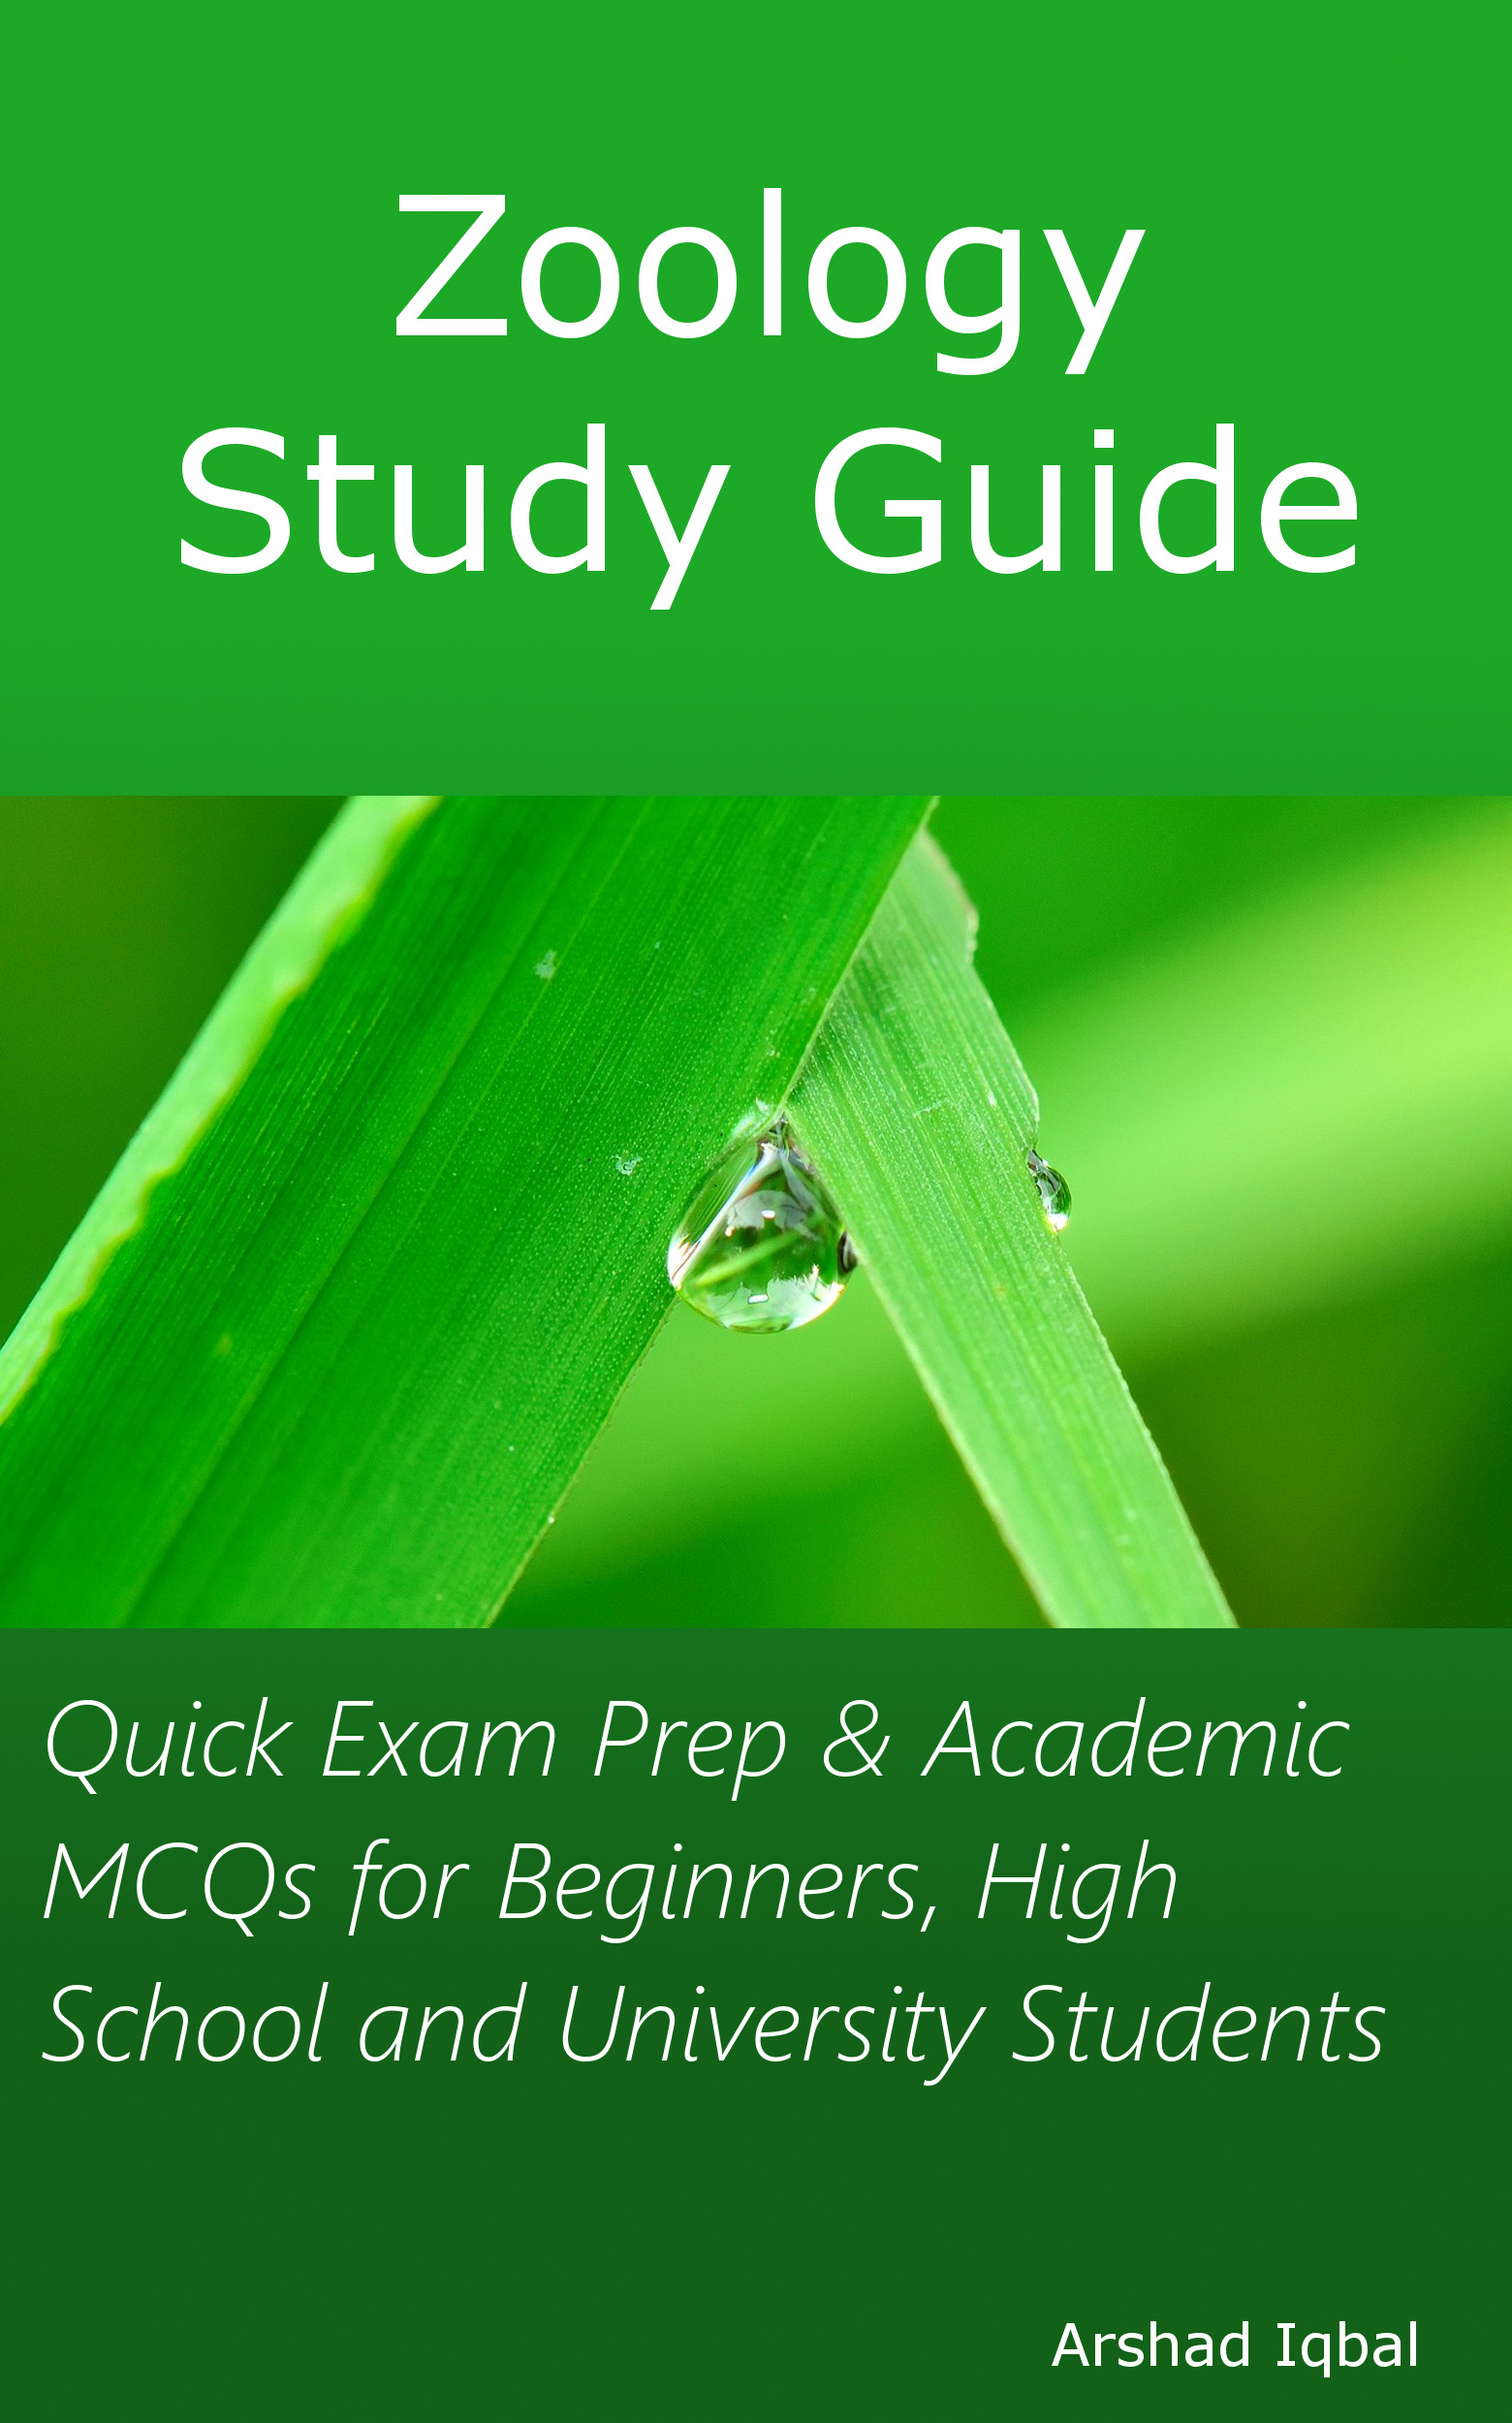 Zoology Study Guide: Quick Exam Prep & Academic MCQs for Beginners, High  School and University Students, an Ebook by Arshad Iqbal